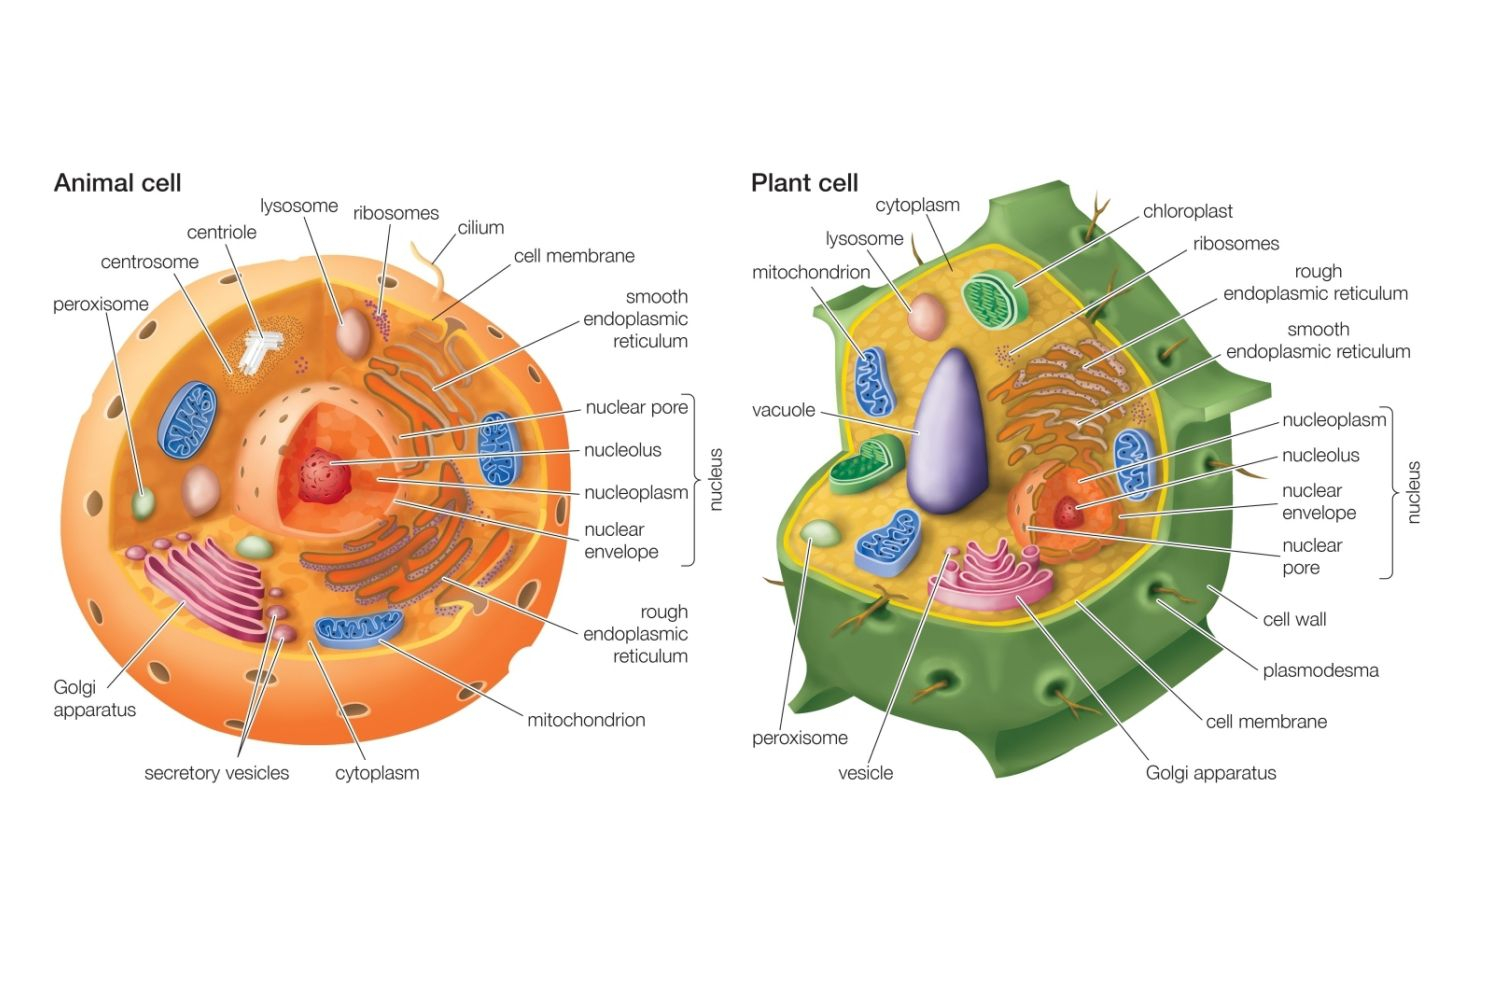 Animal Cell Diagram Differences Between Plant And Animal Cells